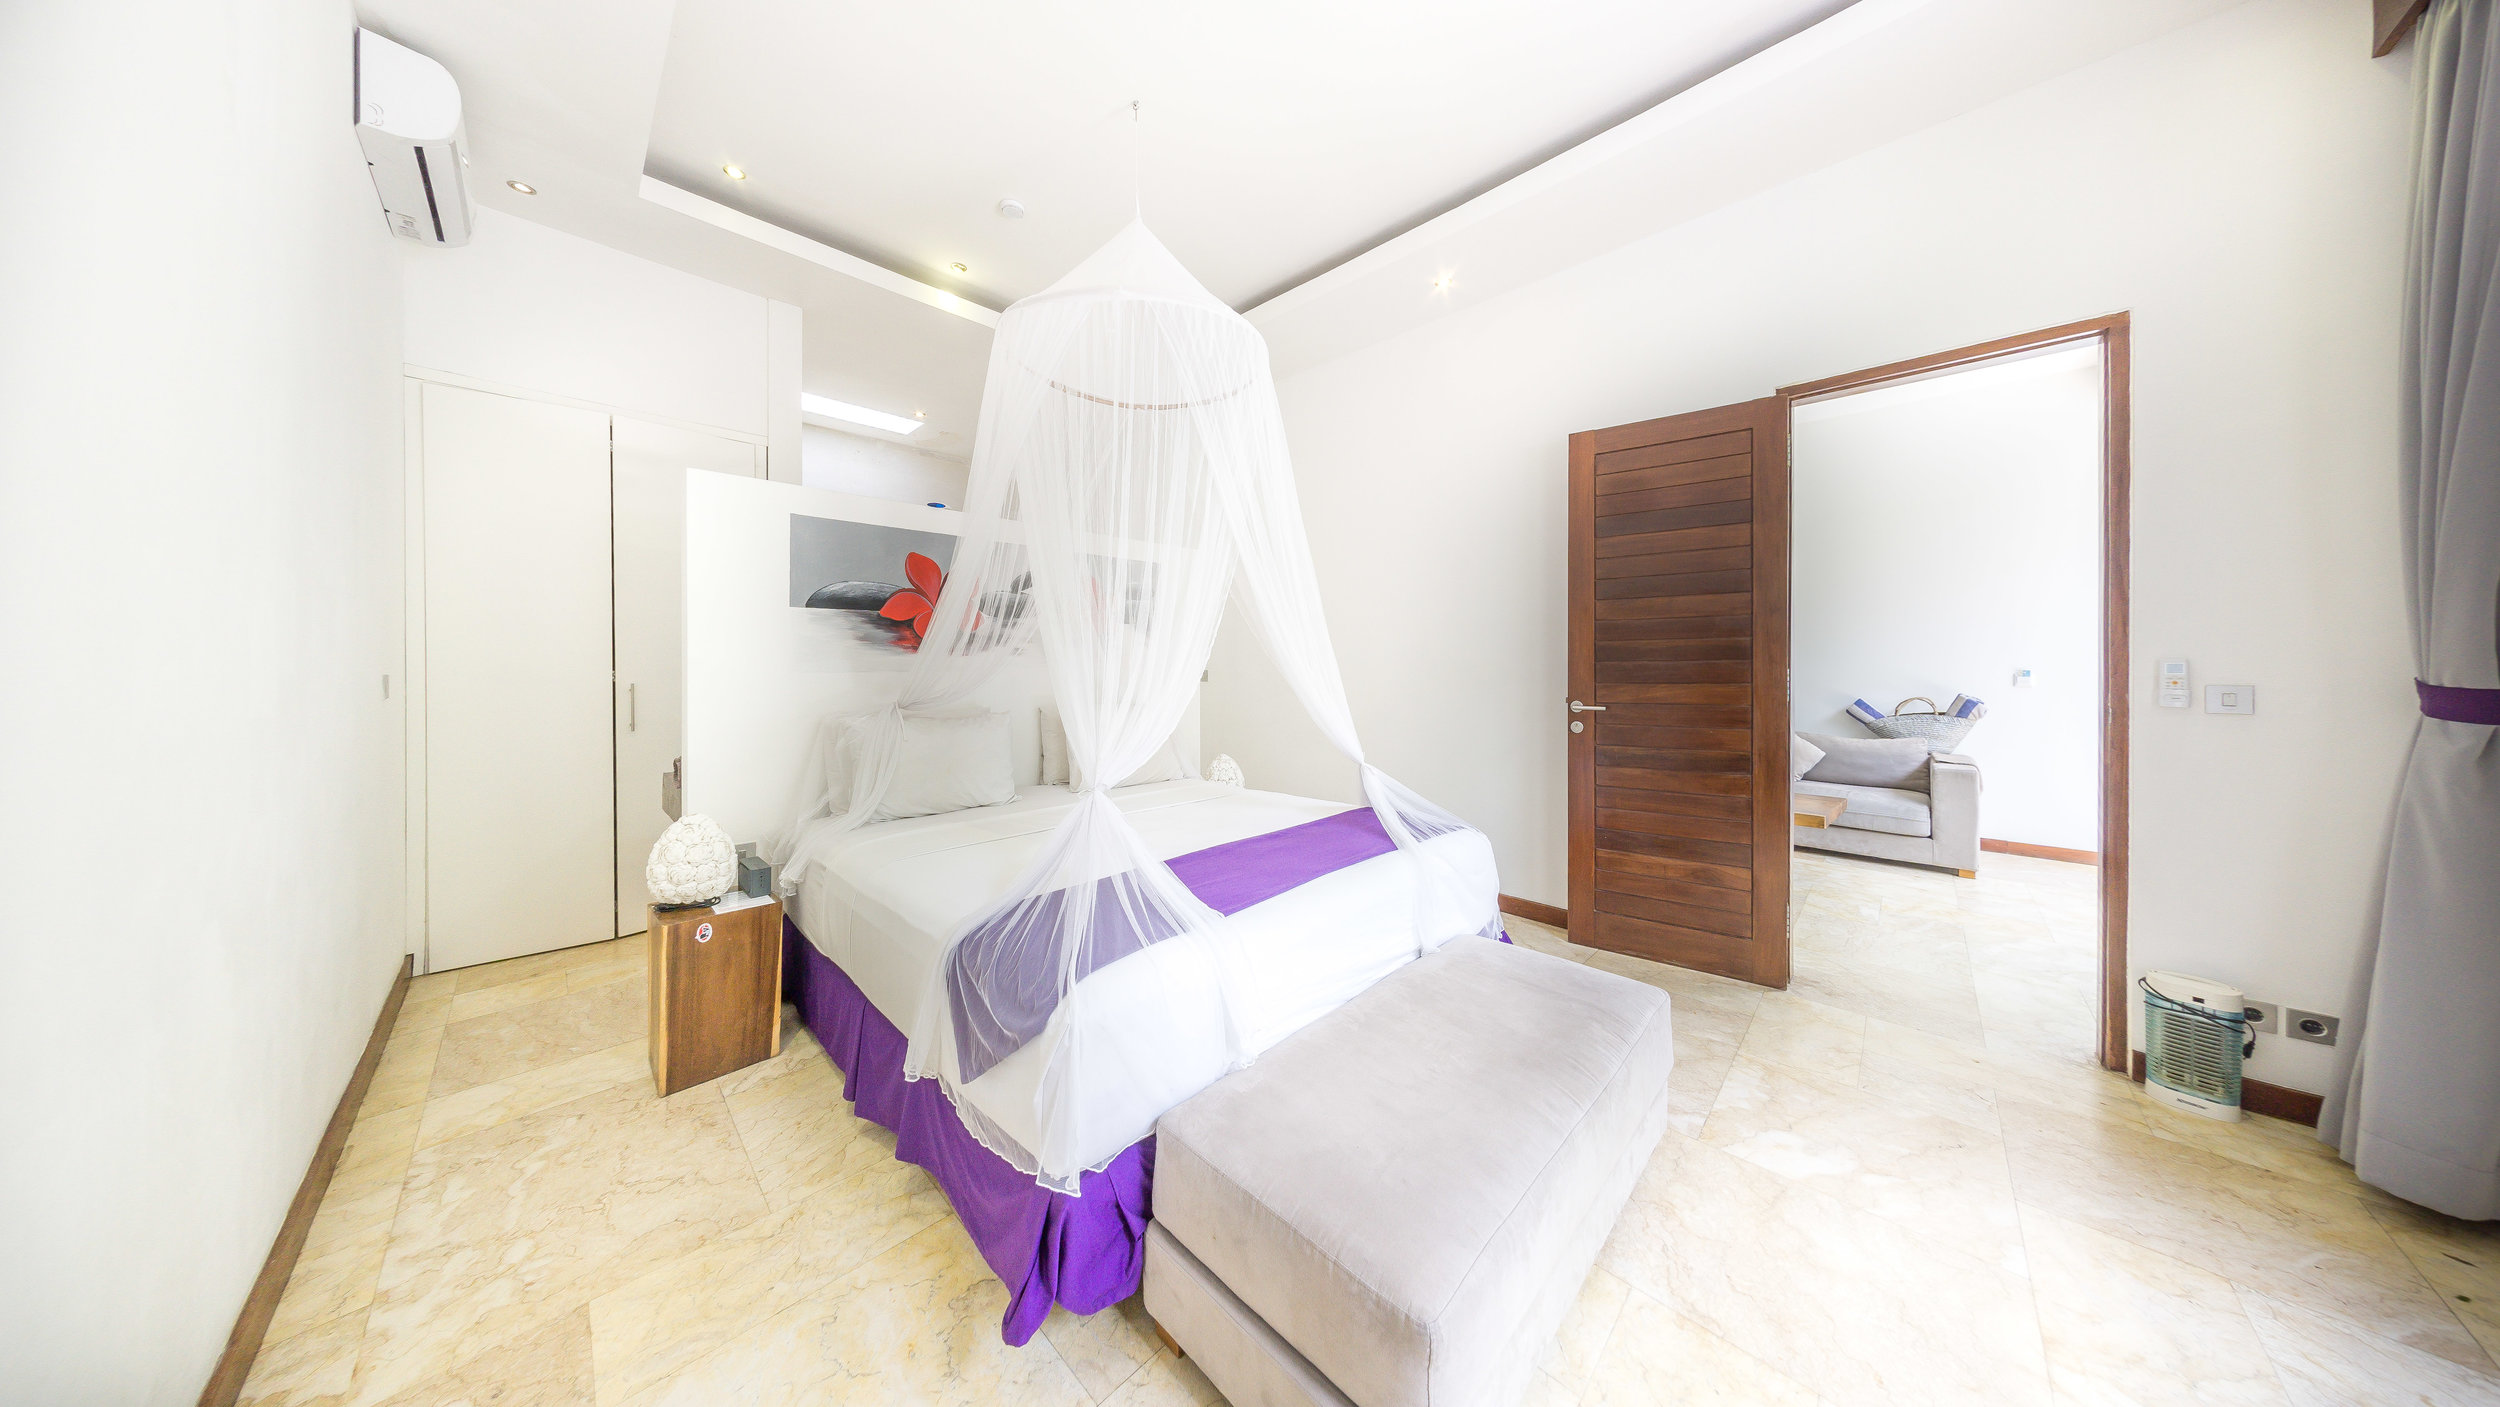 Anema Villa Seminyak - One Bedroom private pool villa with Bath Small-2.jpg